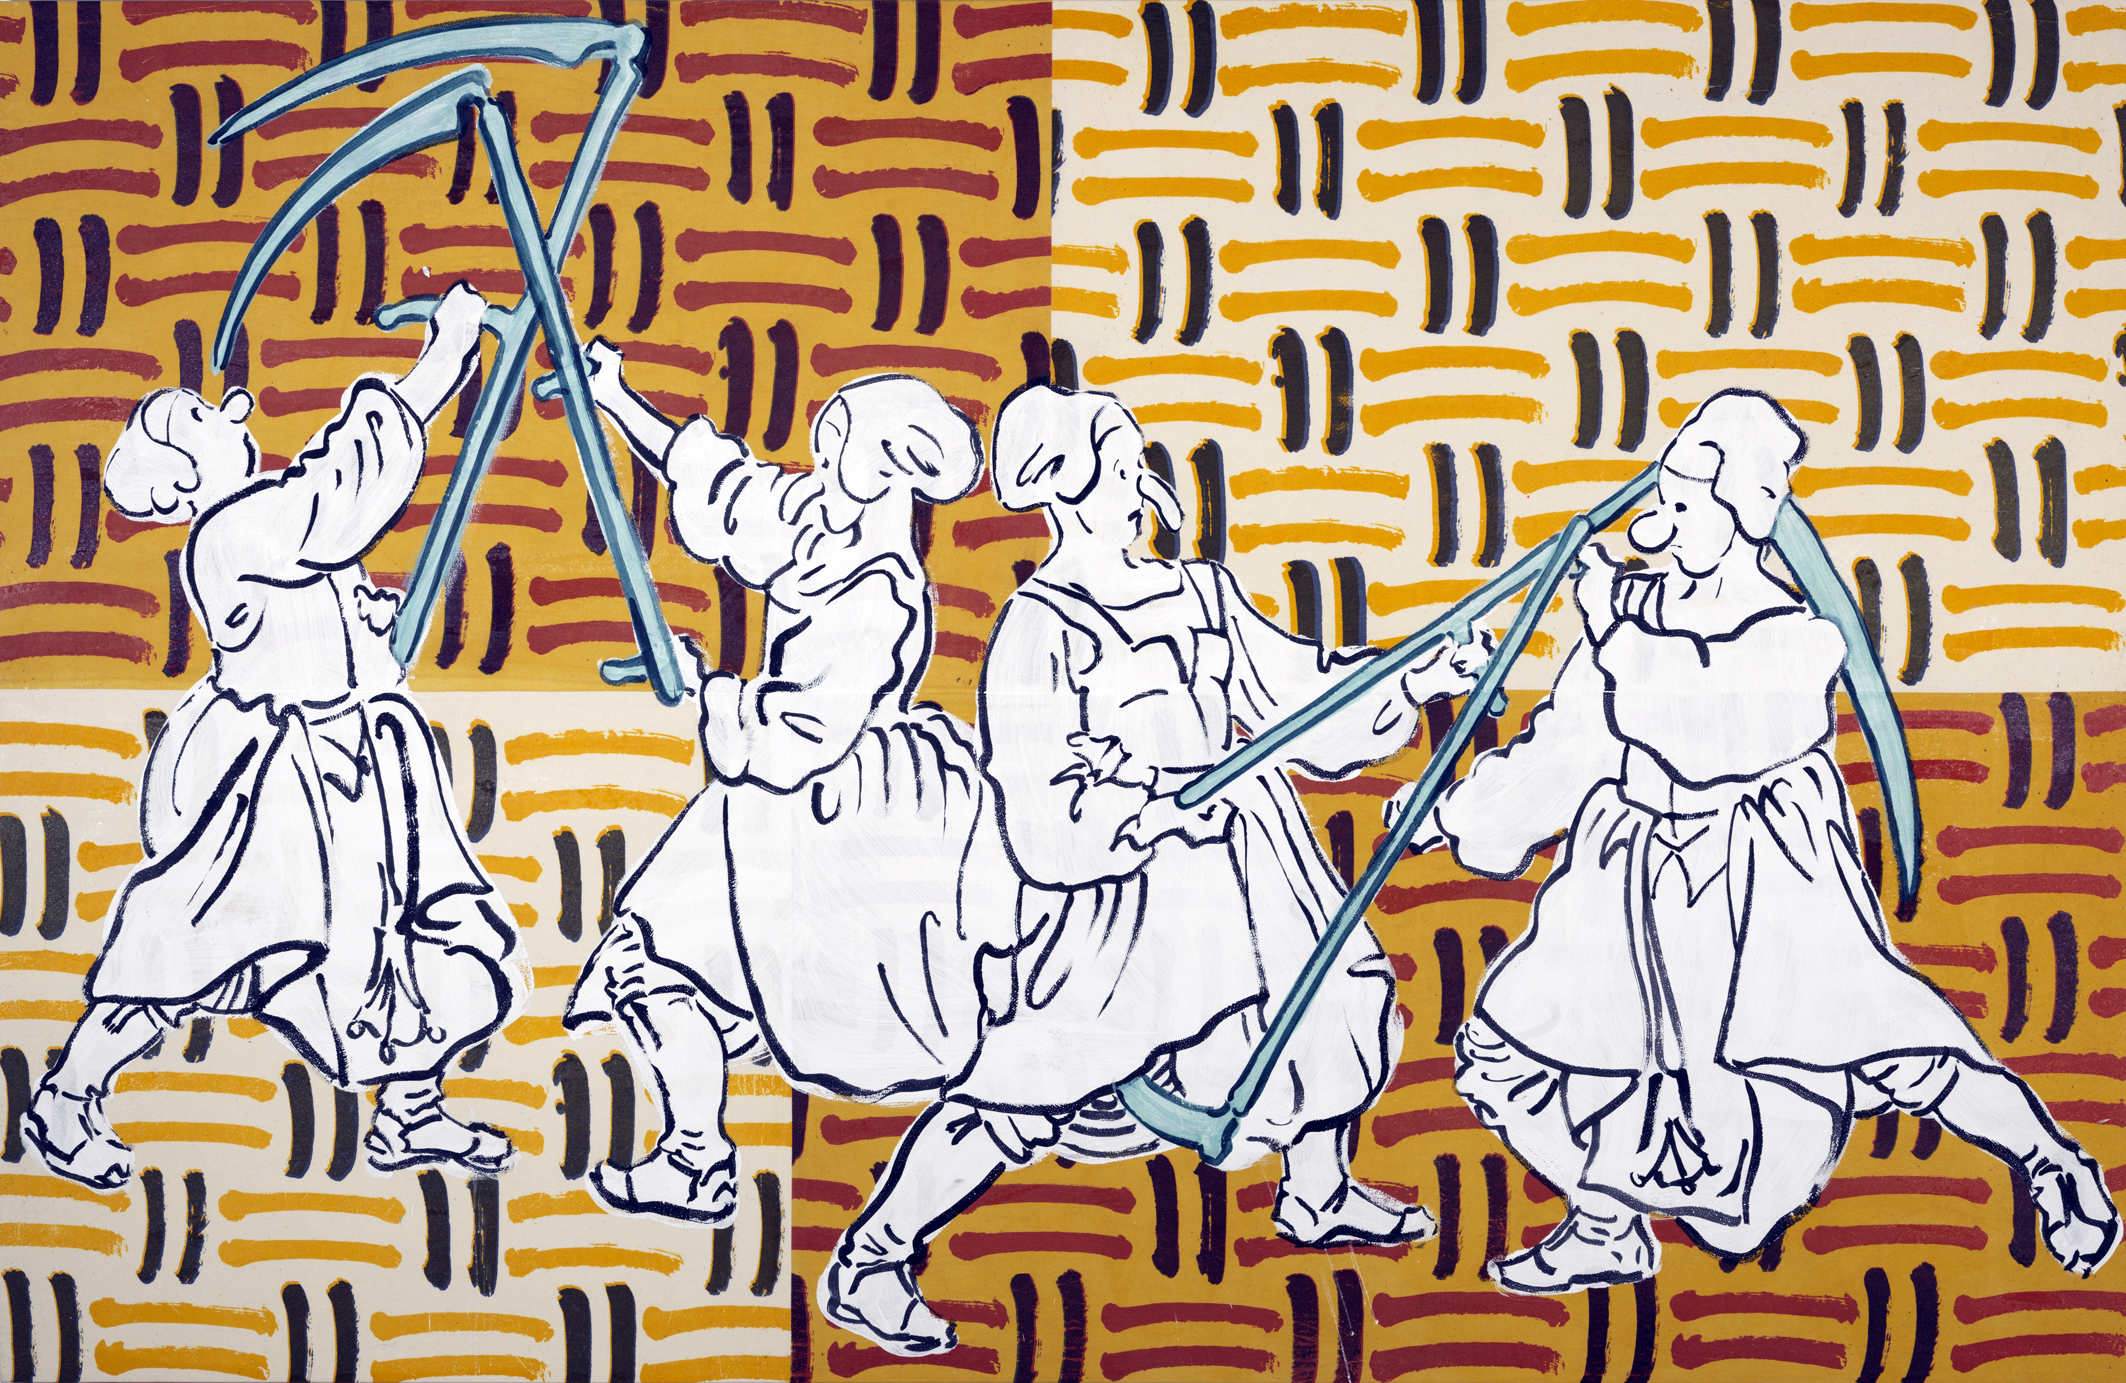 Peasants fighting with scythes, 2017